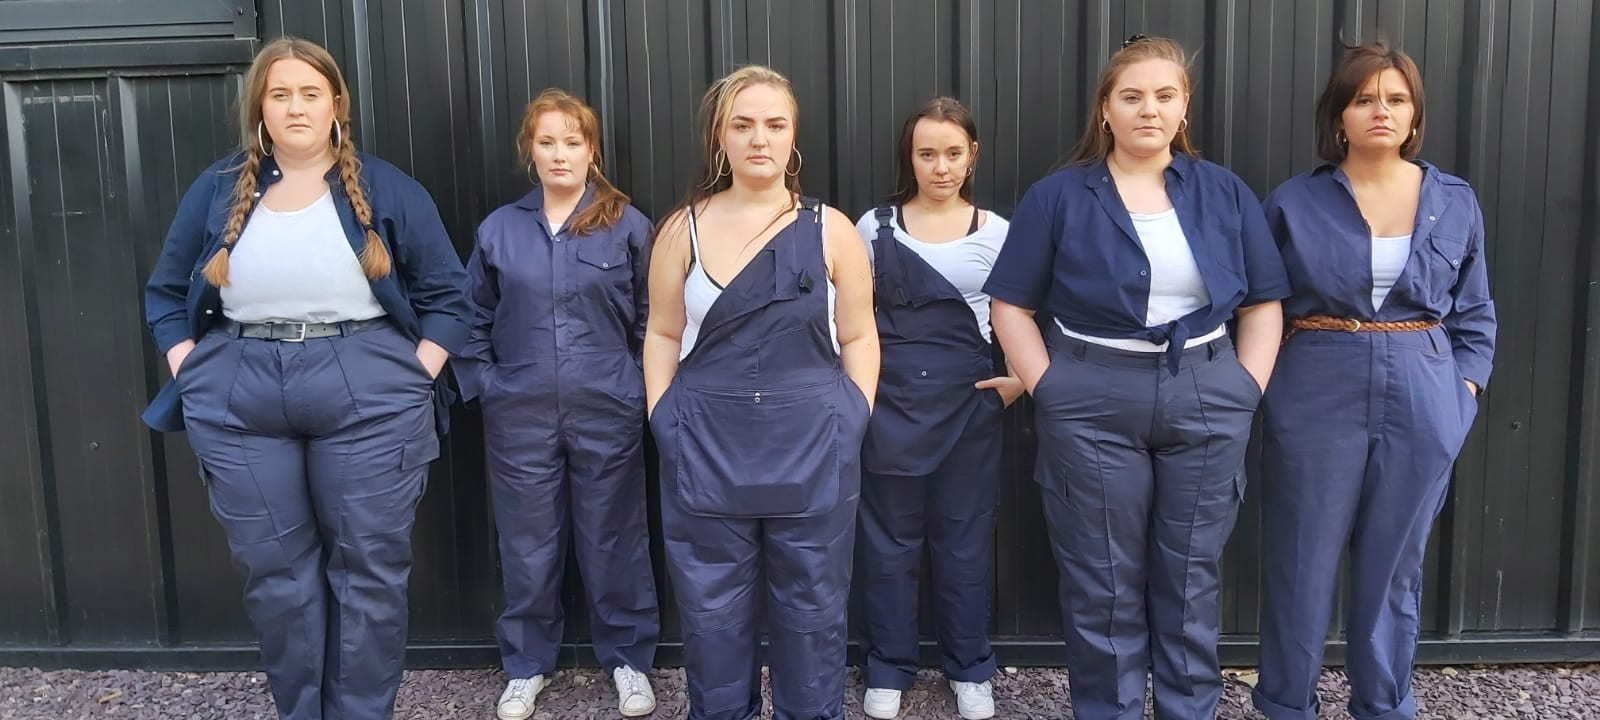 Image contains six women standing face on to the camera, looking serious. All dressed in men's workwear.